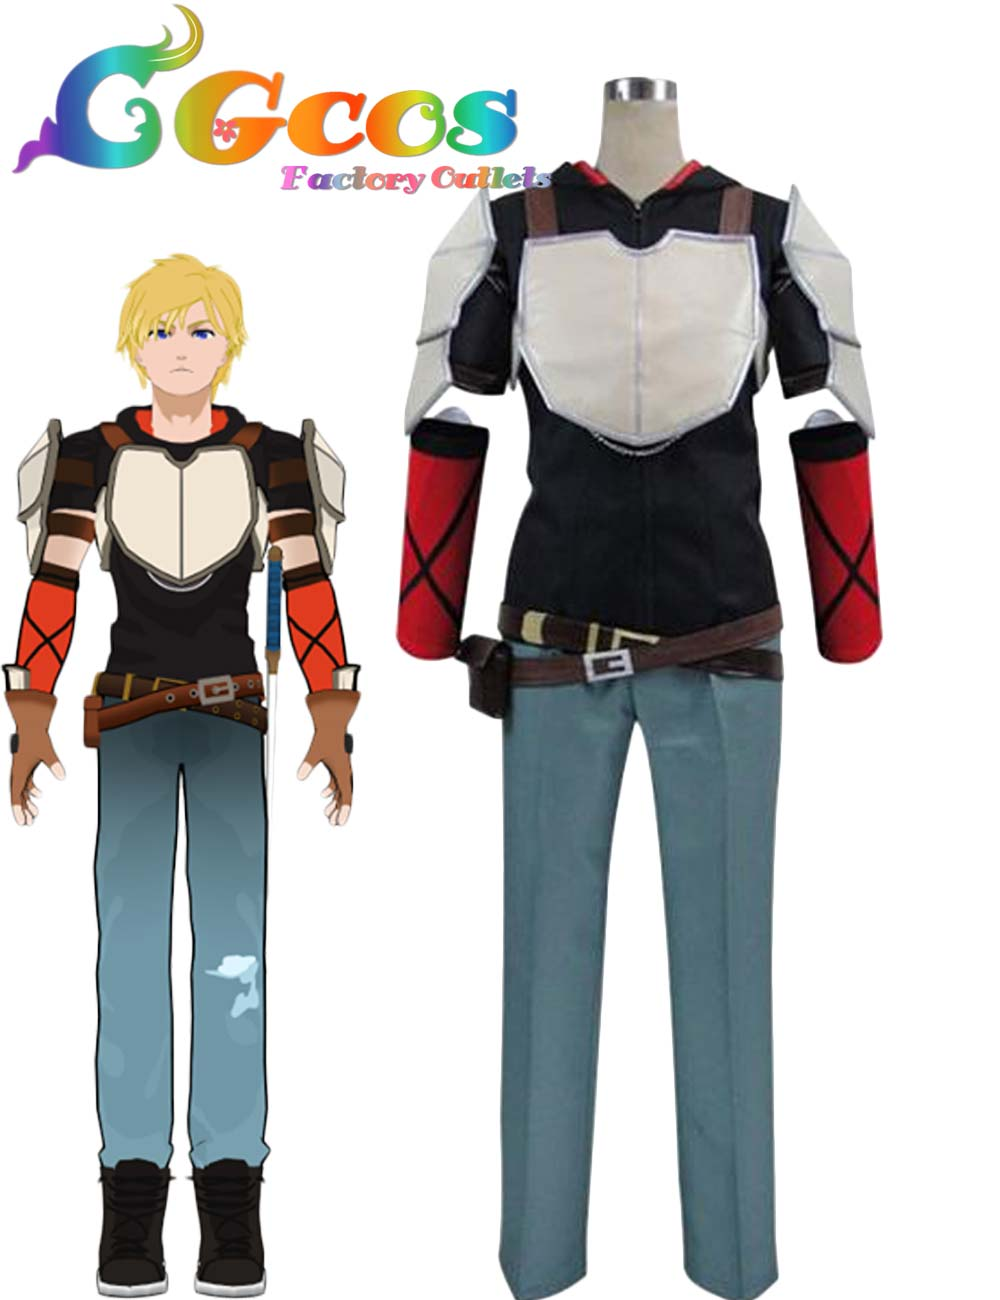 cgcos free shipping cosplay costume rwby jaune arc new in stock retail wholesale halloween christmas uniform - Christmas Wholesale